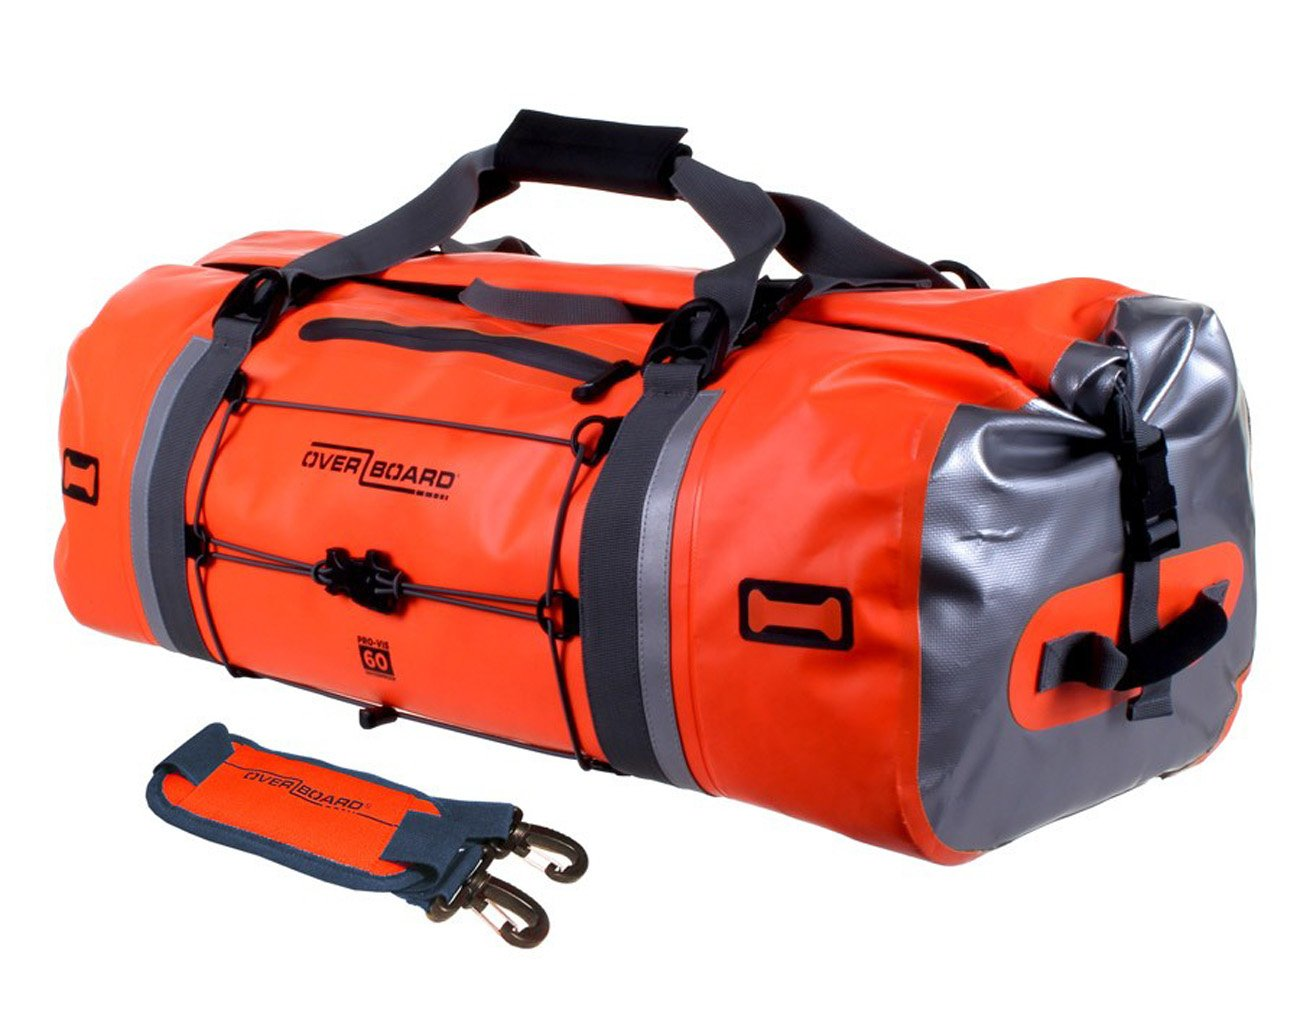 Amazon OverBoard Waterproof Pro Vis Duffel Bag Orange 60